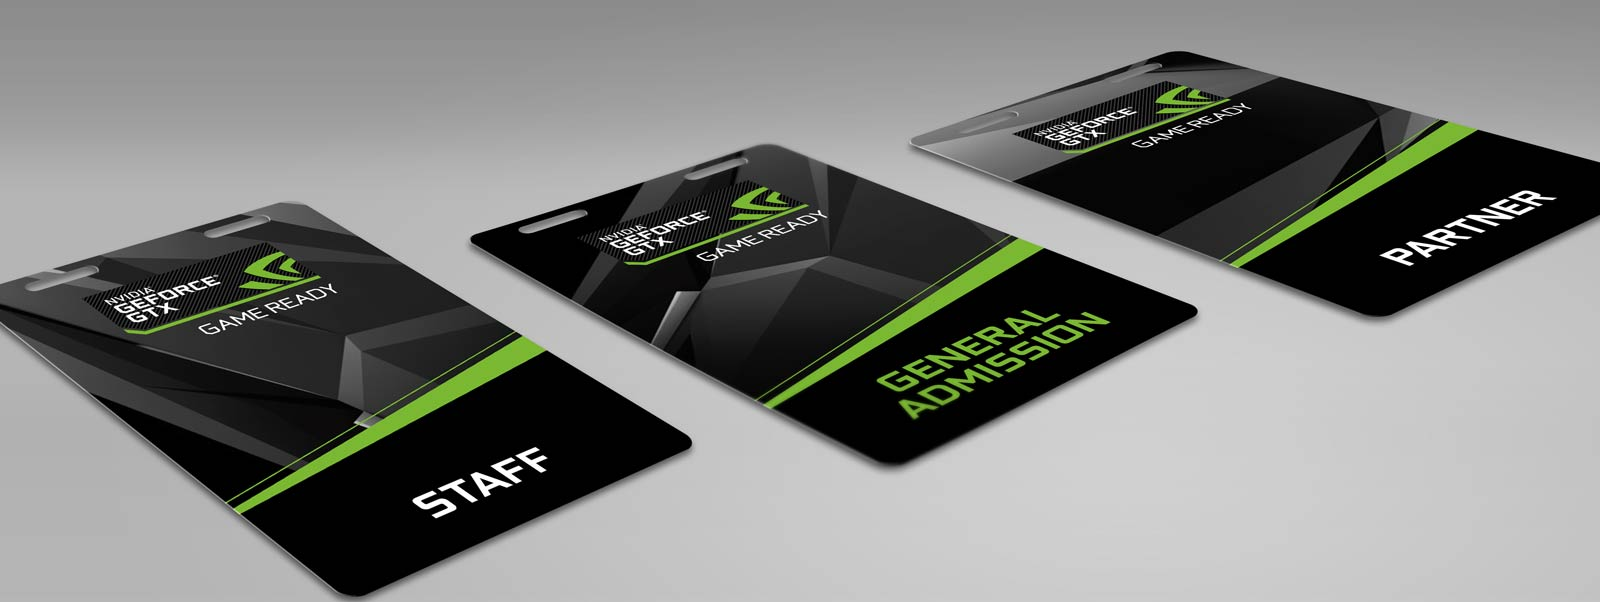 GeForce Pascal badges